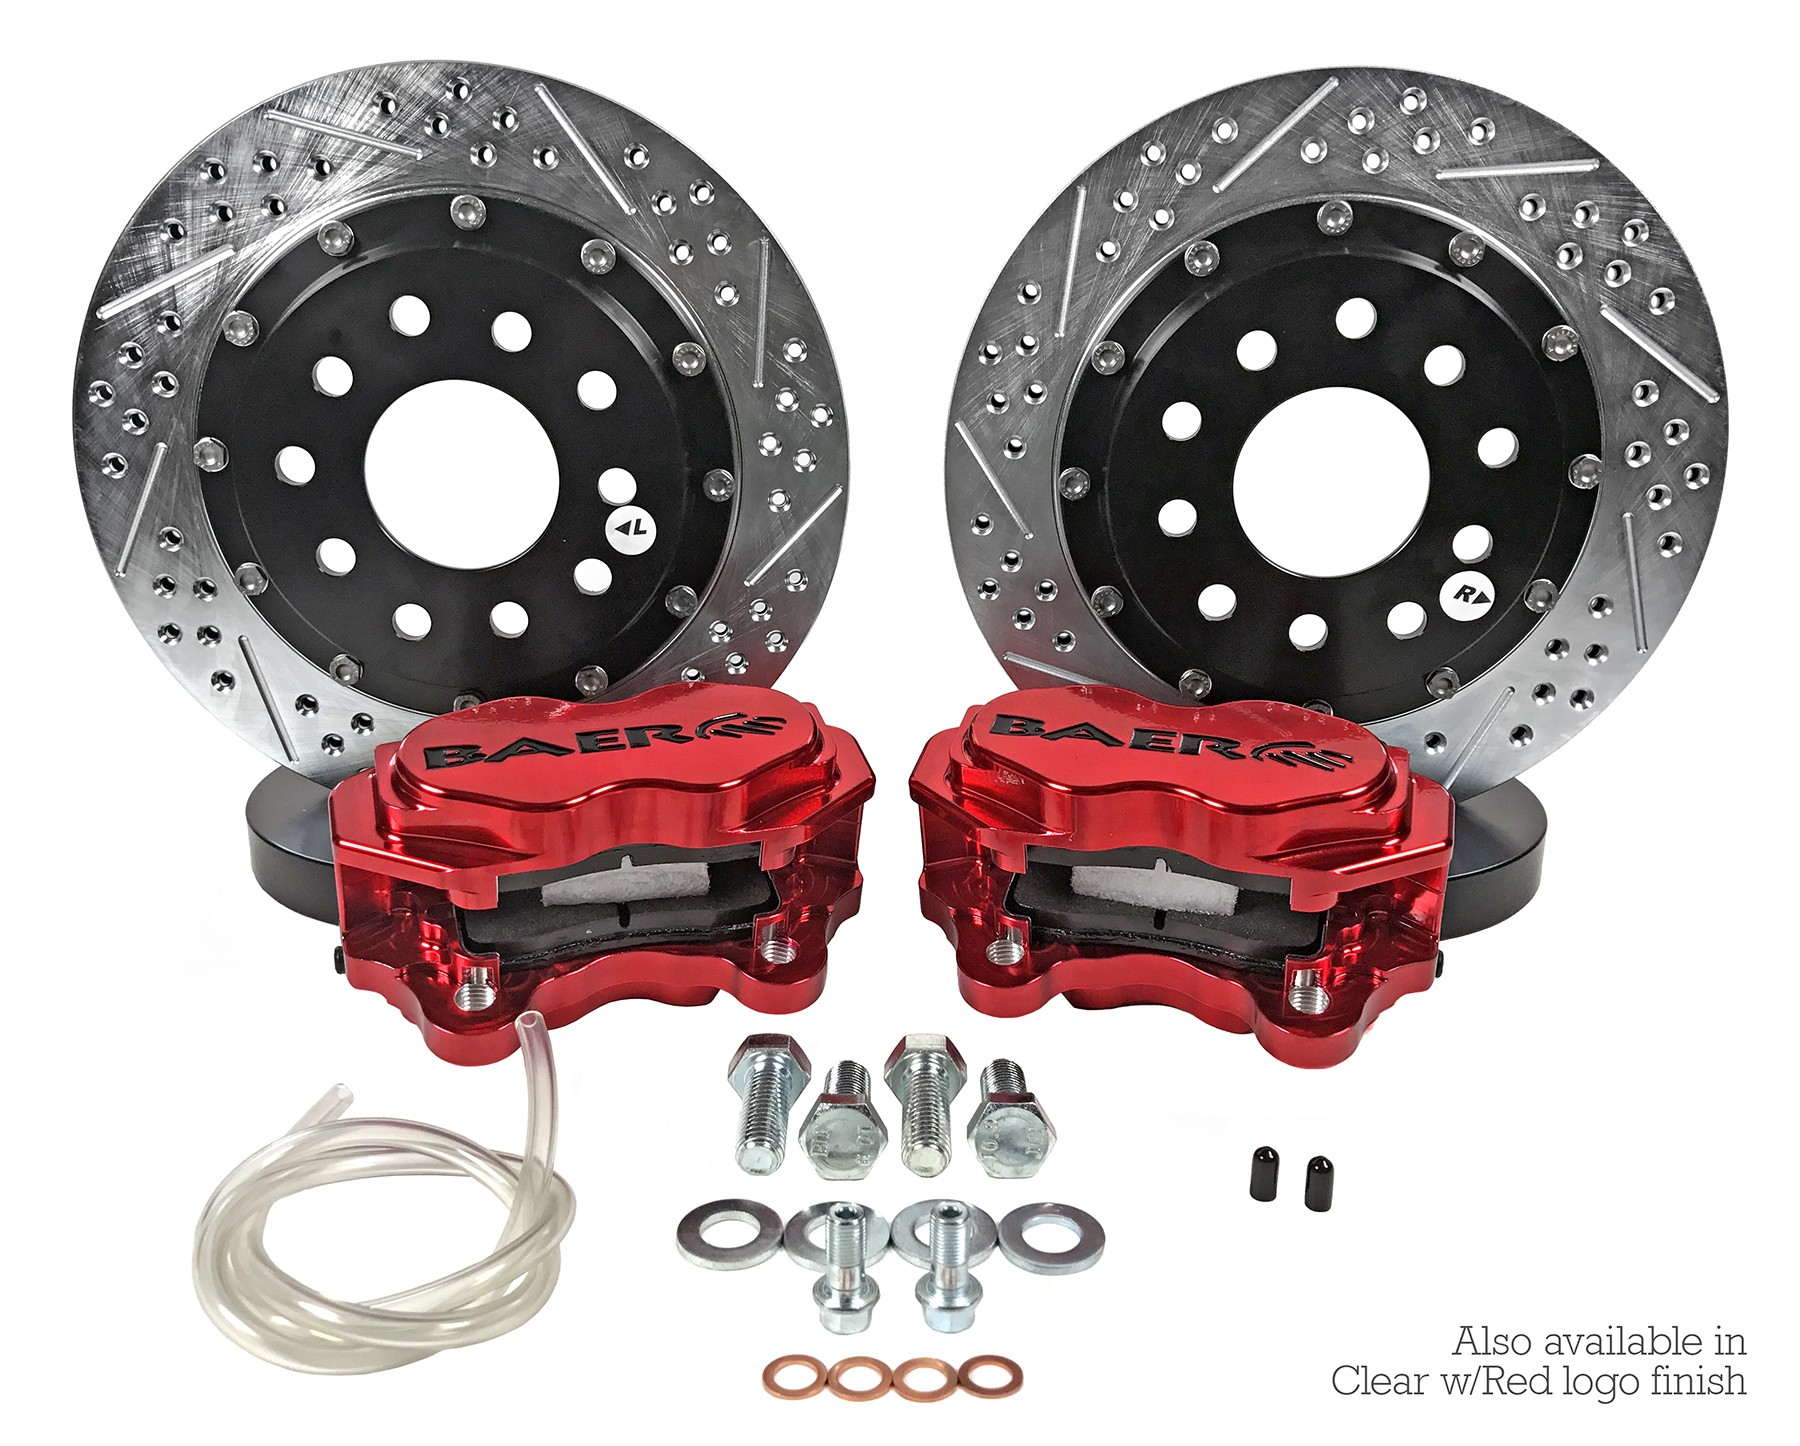 "11.62"" Rear SS4+ Drag Race Brake System"